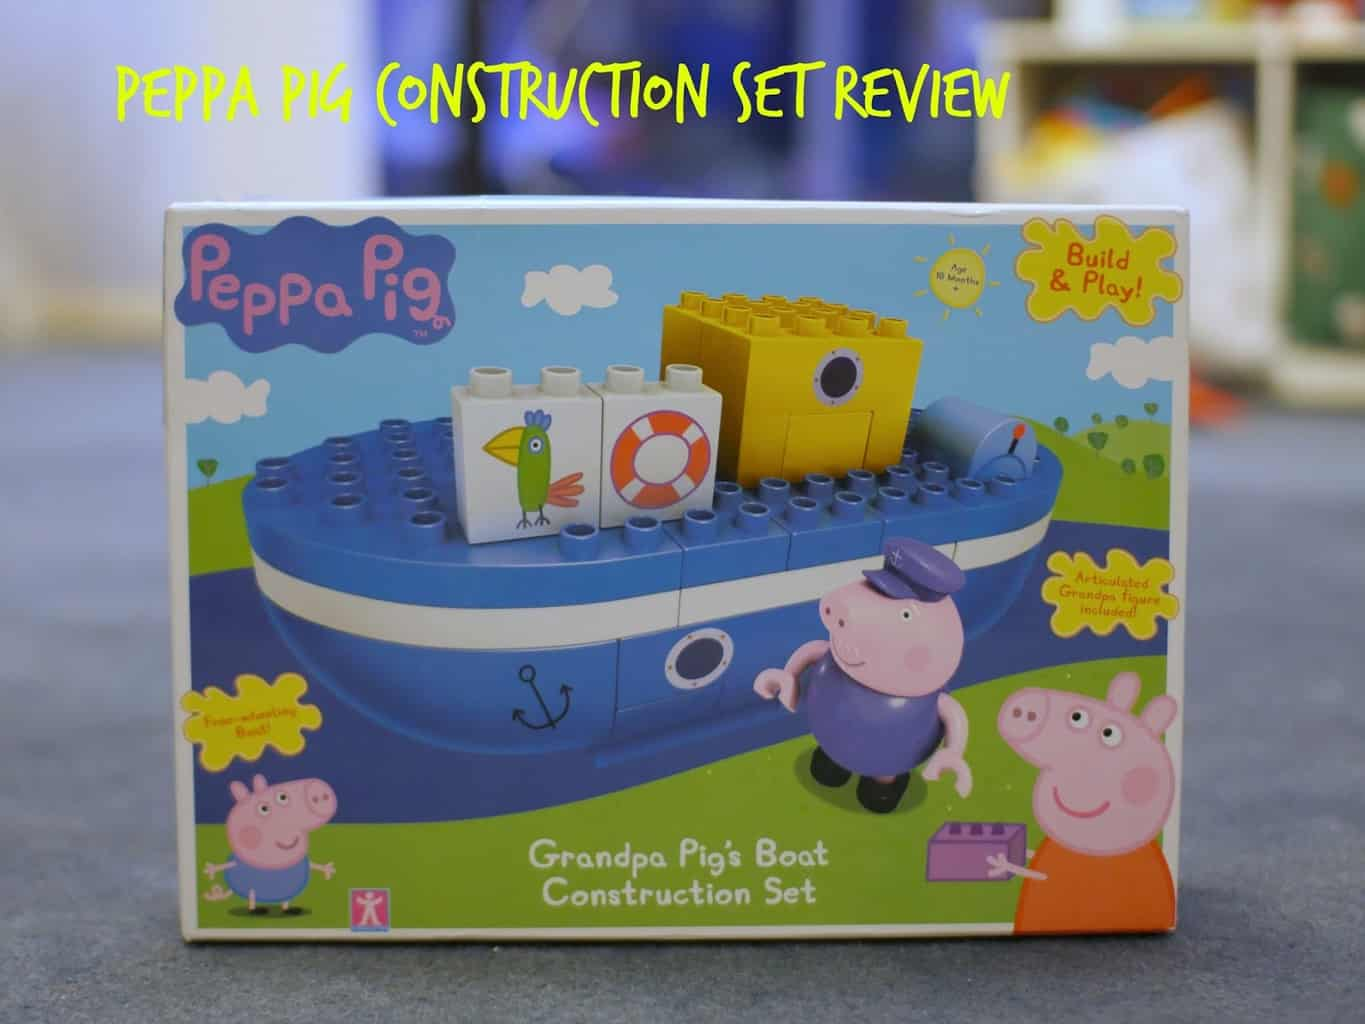 Peppa Pig Grandpa pig's boat construction set